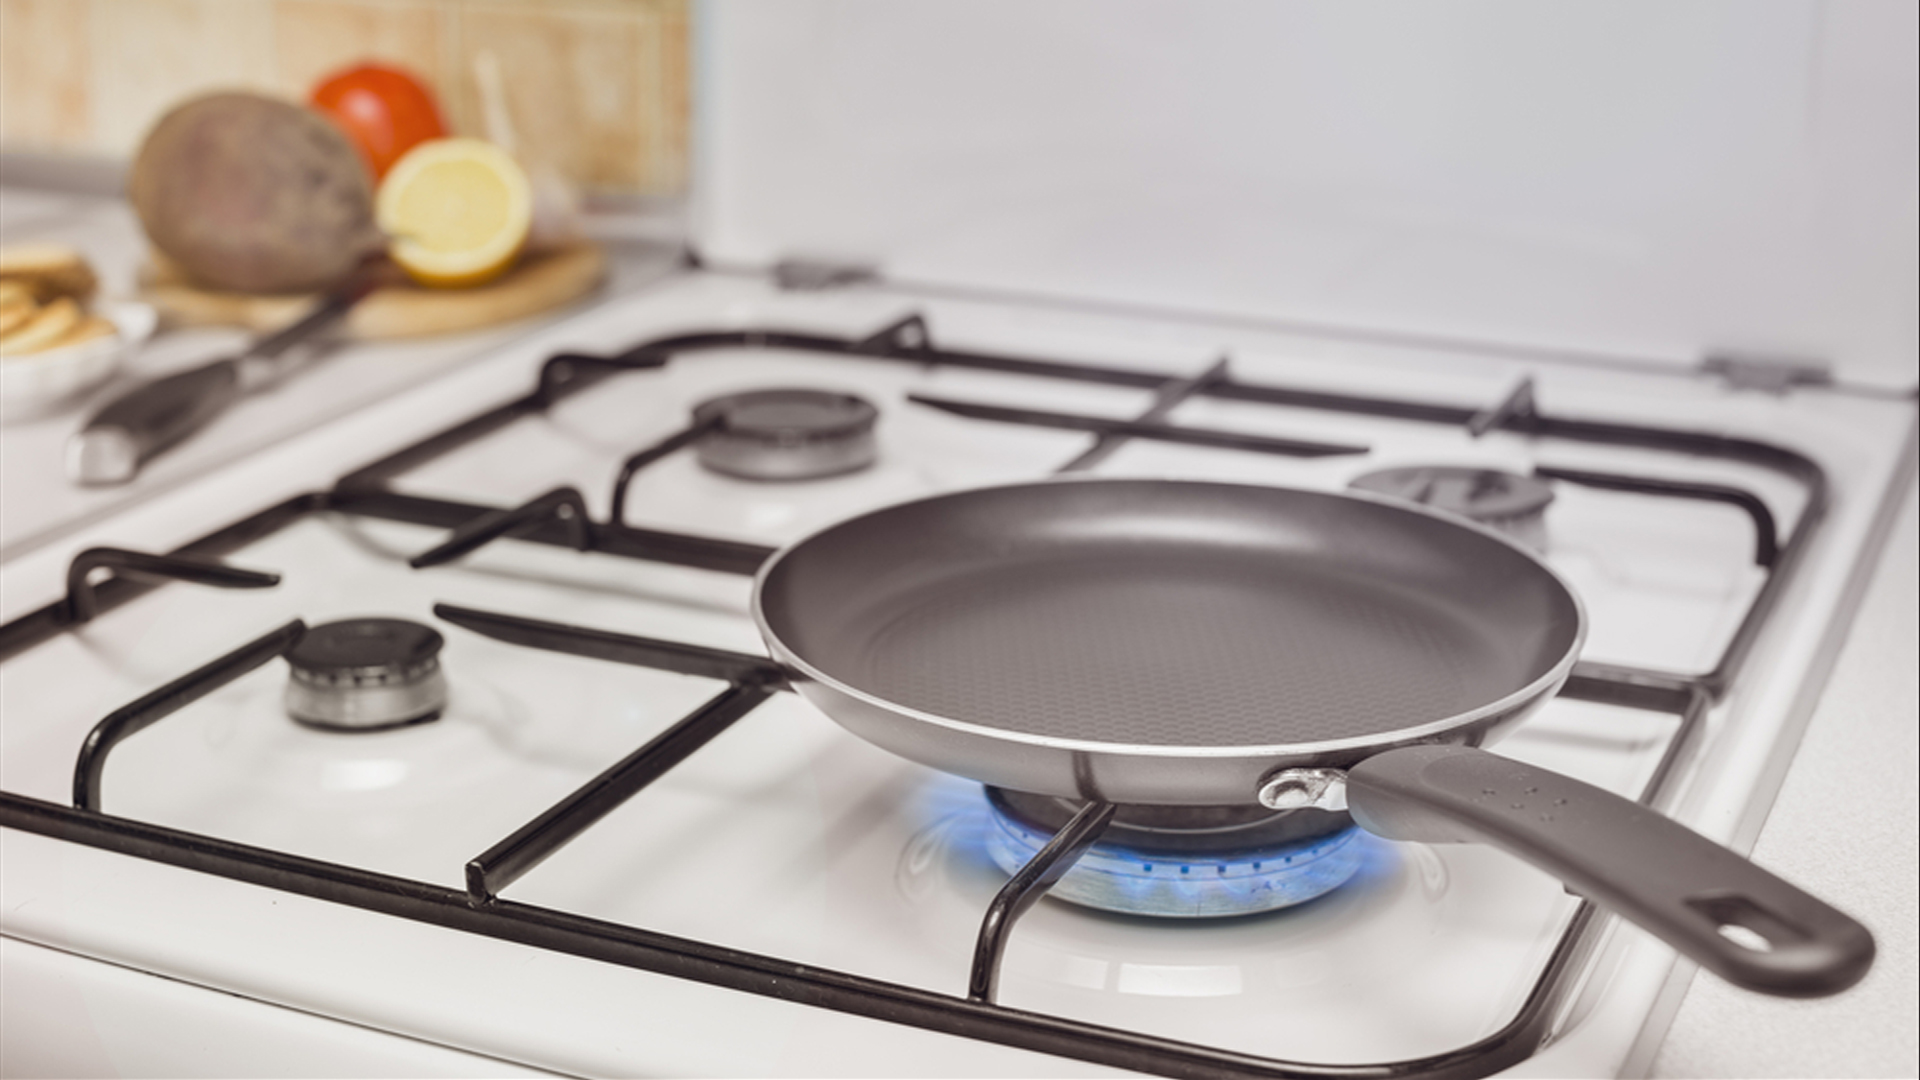 cleaning hack how to clean stove grates. Black Bedroom Furniture Sets. Home Design Ideas